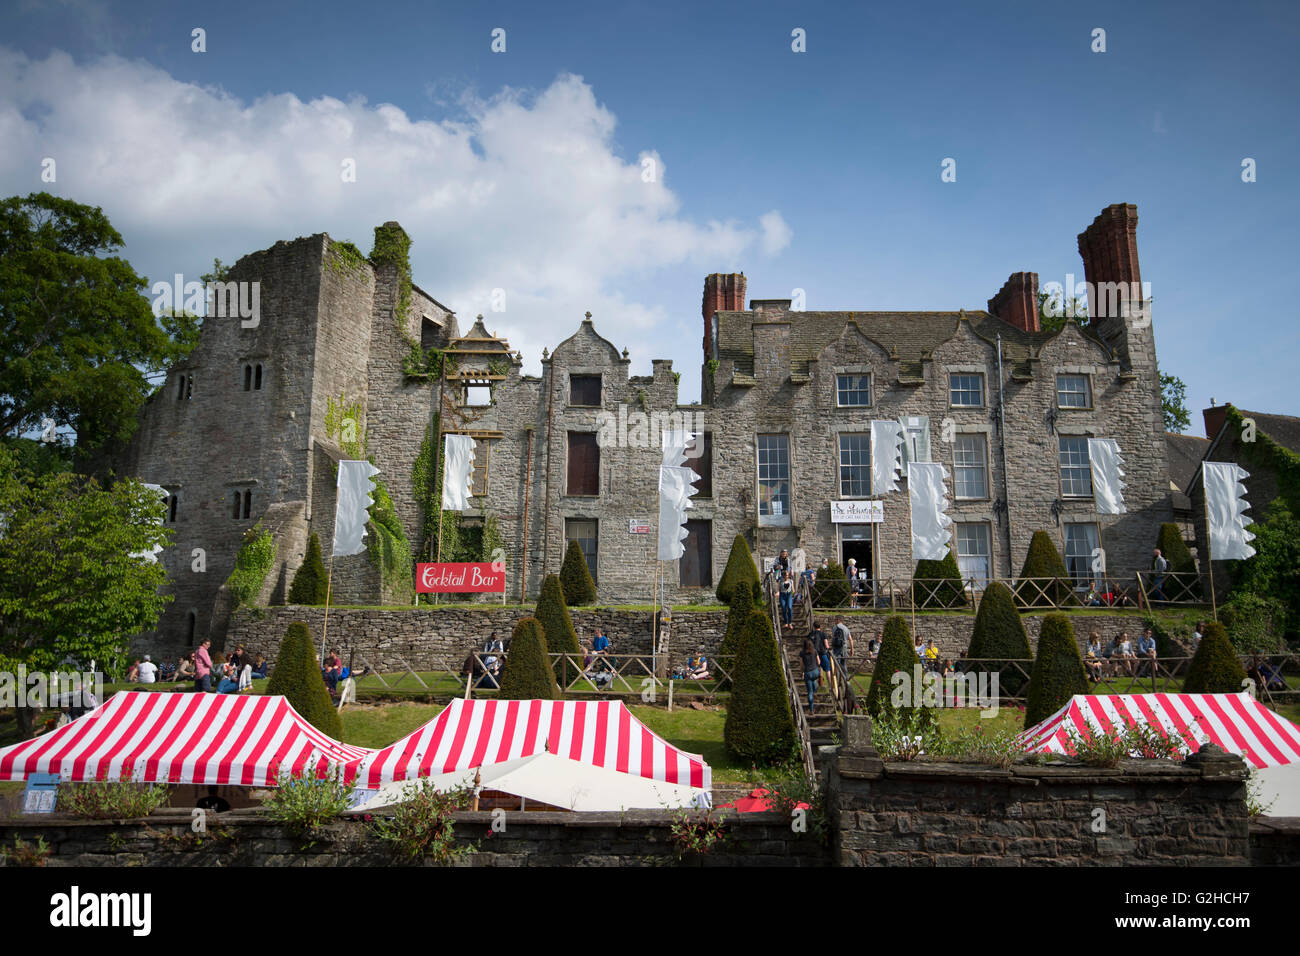 Hay Castle on a warm sunny day in Hay-on-Wye, Wales. - Stock Image